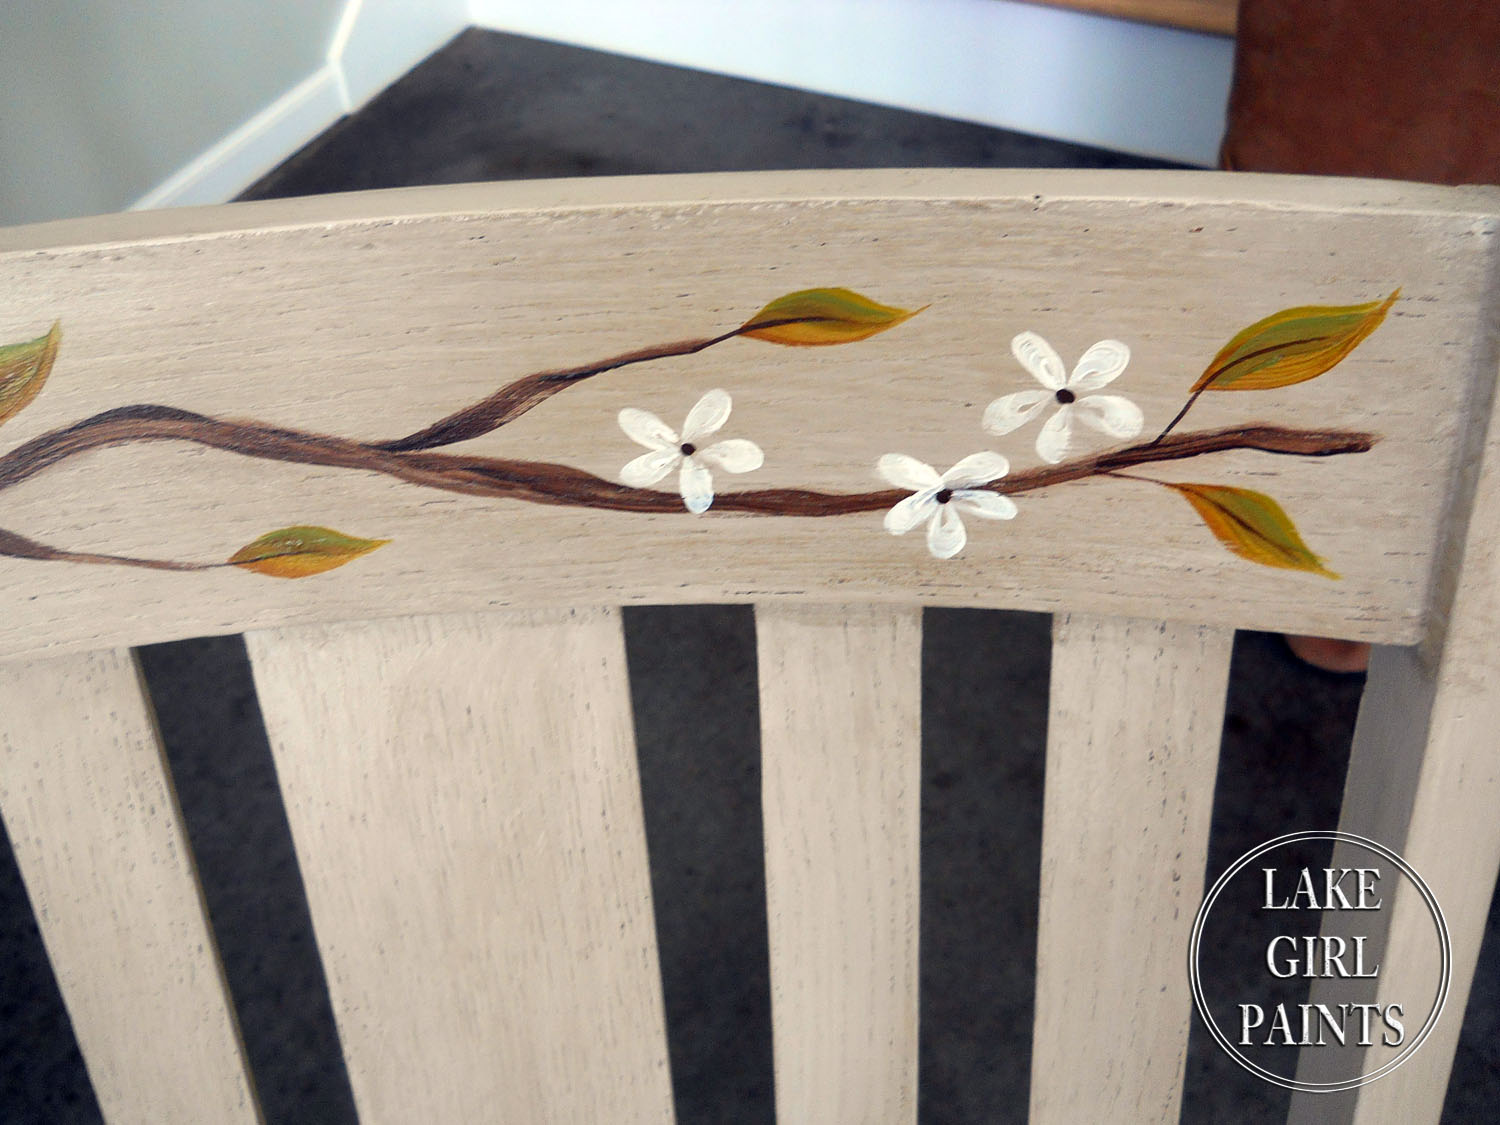 tree branch rocking chair high activity tray lake girl paints painted nature inspired